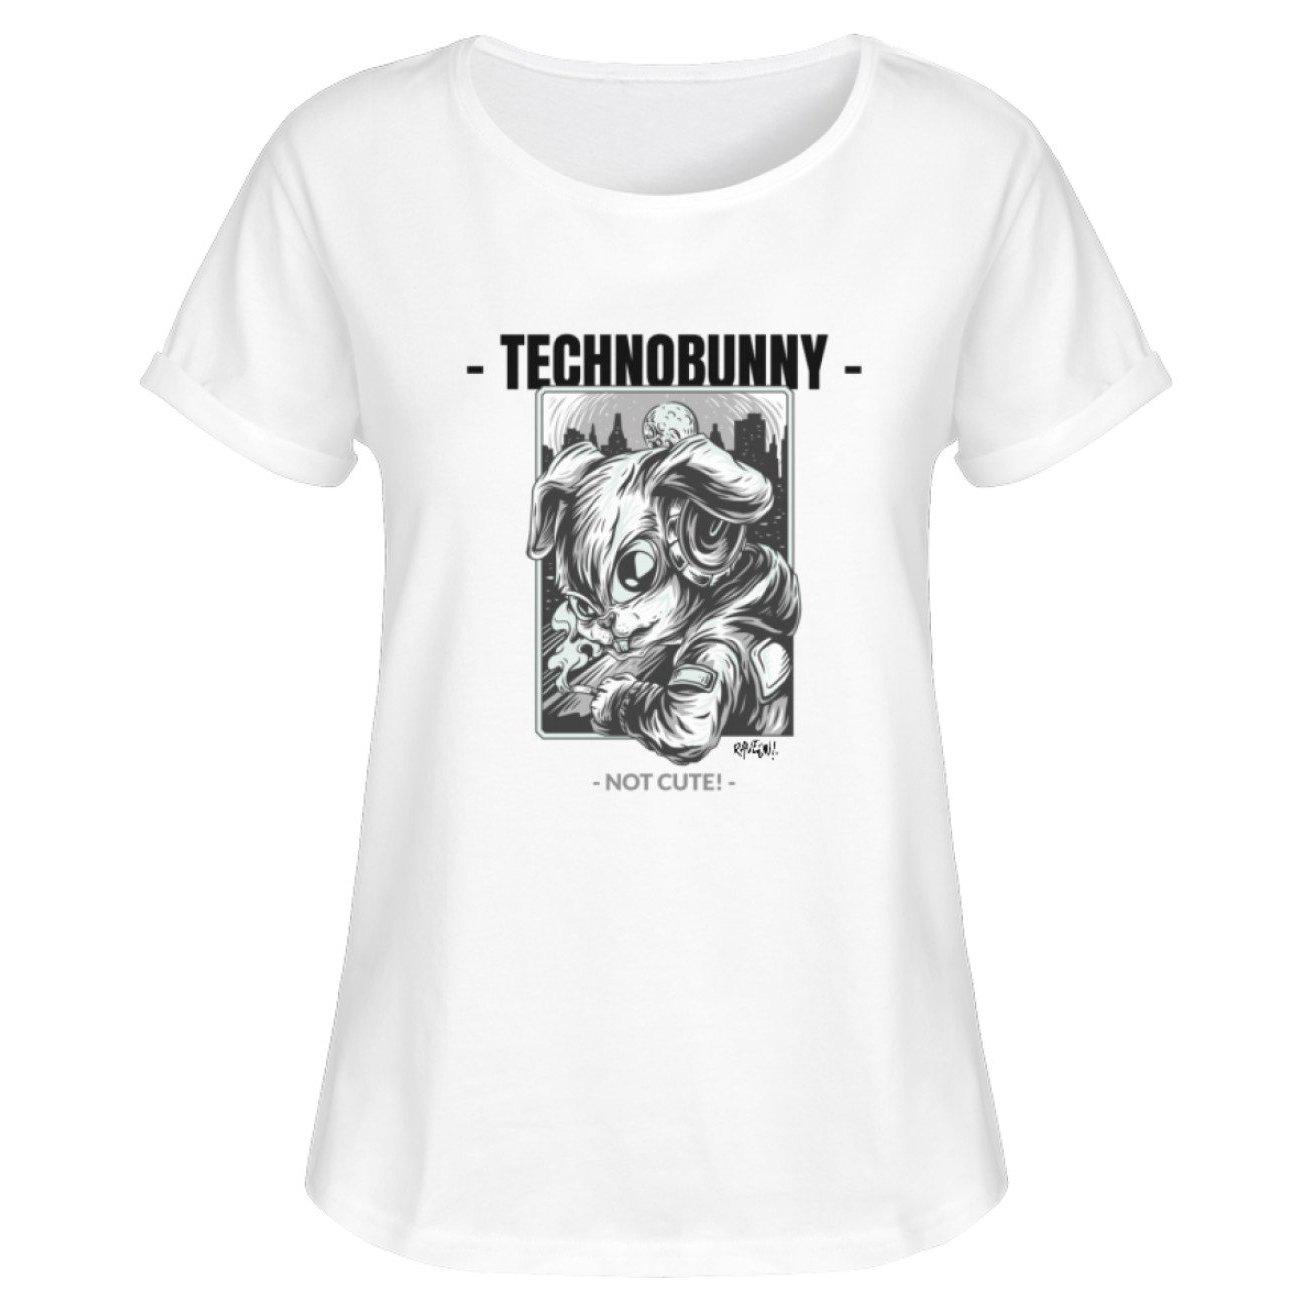 TECHNOBUNNY - Not Cute! - Rave On!® - Damen RollUp Shirt Women Rollup Shirt White / S - Rave On!® der Club & Techno Szene Shop für Coole Junge Mode Streetwear Style & Fashion Outfits + Sexy Festival 420 Stuff